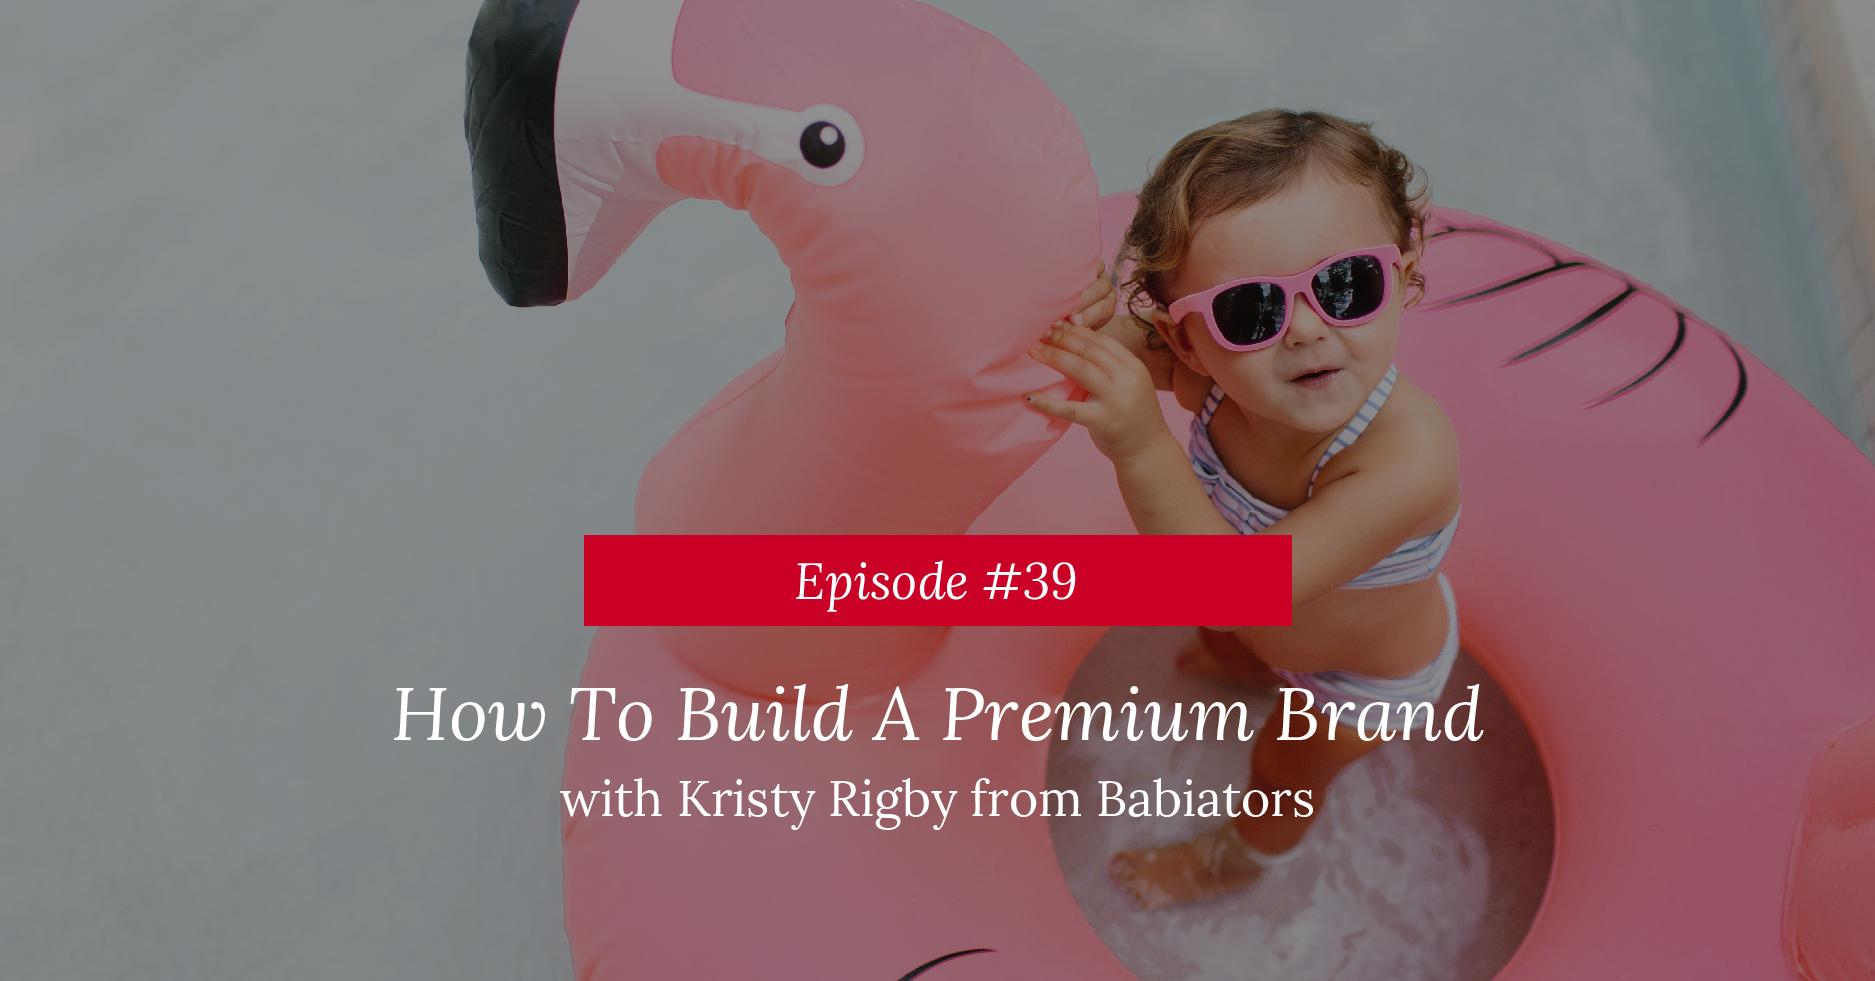 How To Build A Premium Brand